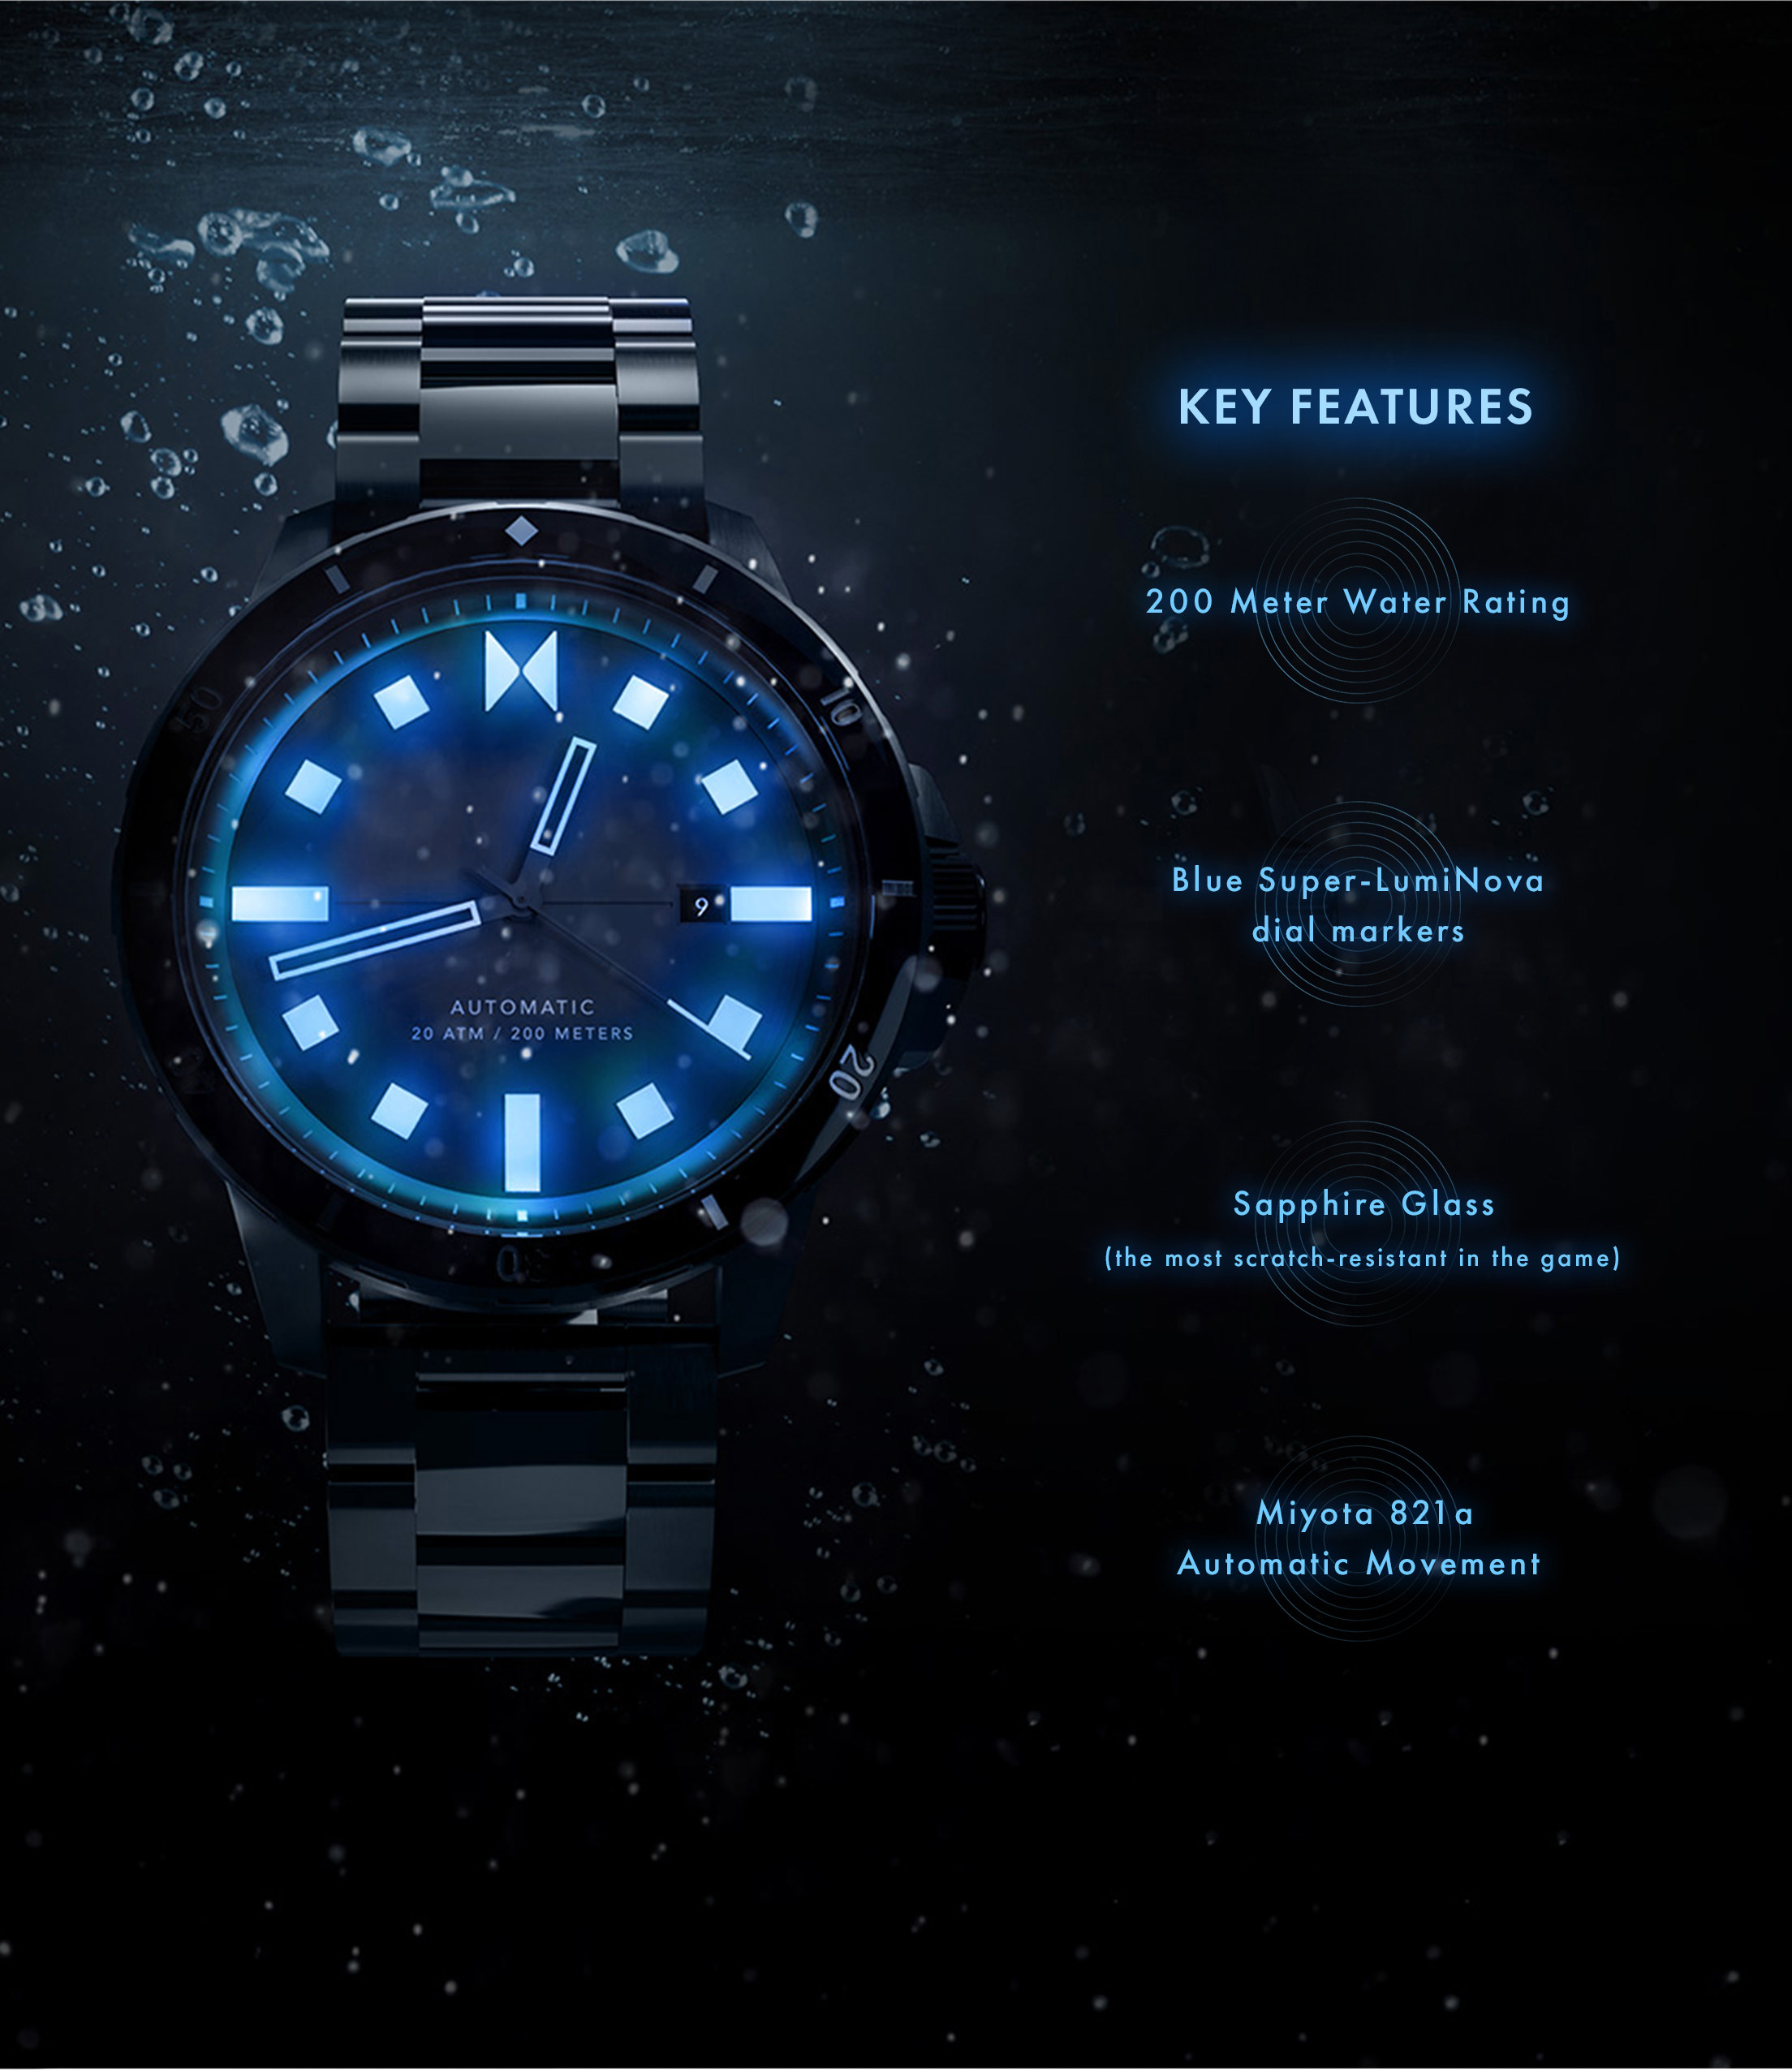 Key Features. 200 Meter Water Rating. Blue Super-LumiNova dial markers. Sapphire Glass (the most scratch-resistant in the game). Miyota 821 a Automatic Movement.